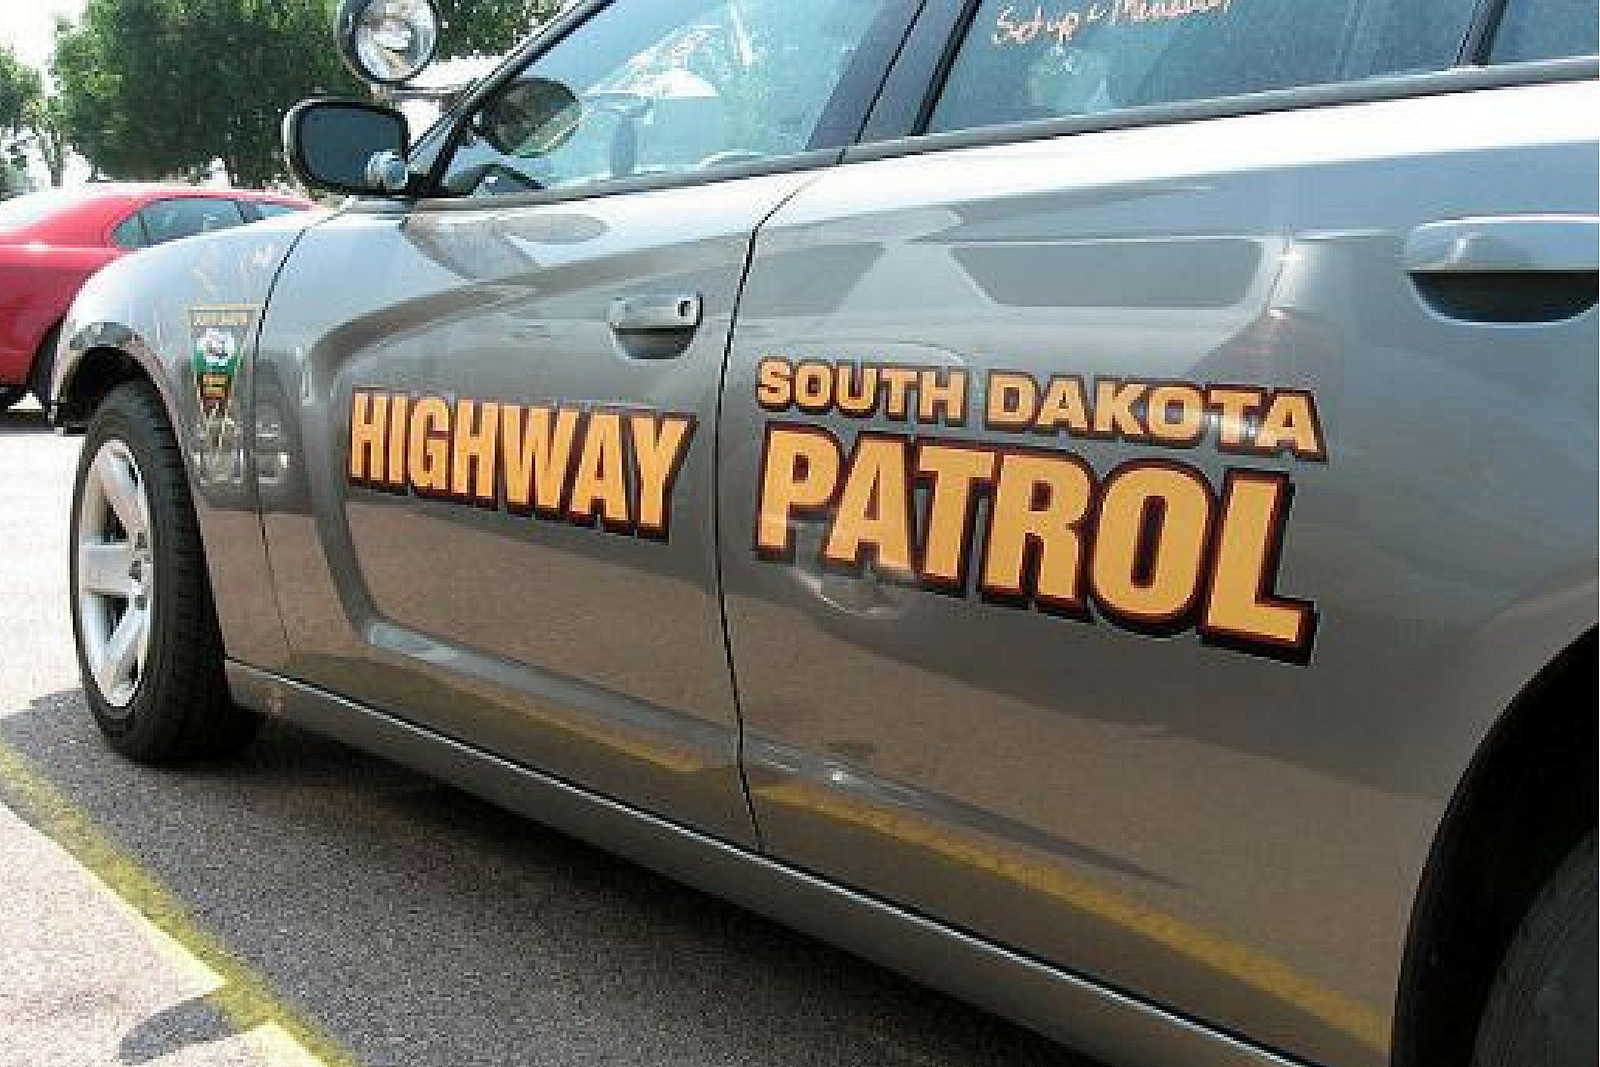 South Dakota Highway Patrol Car